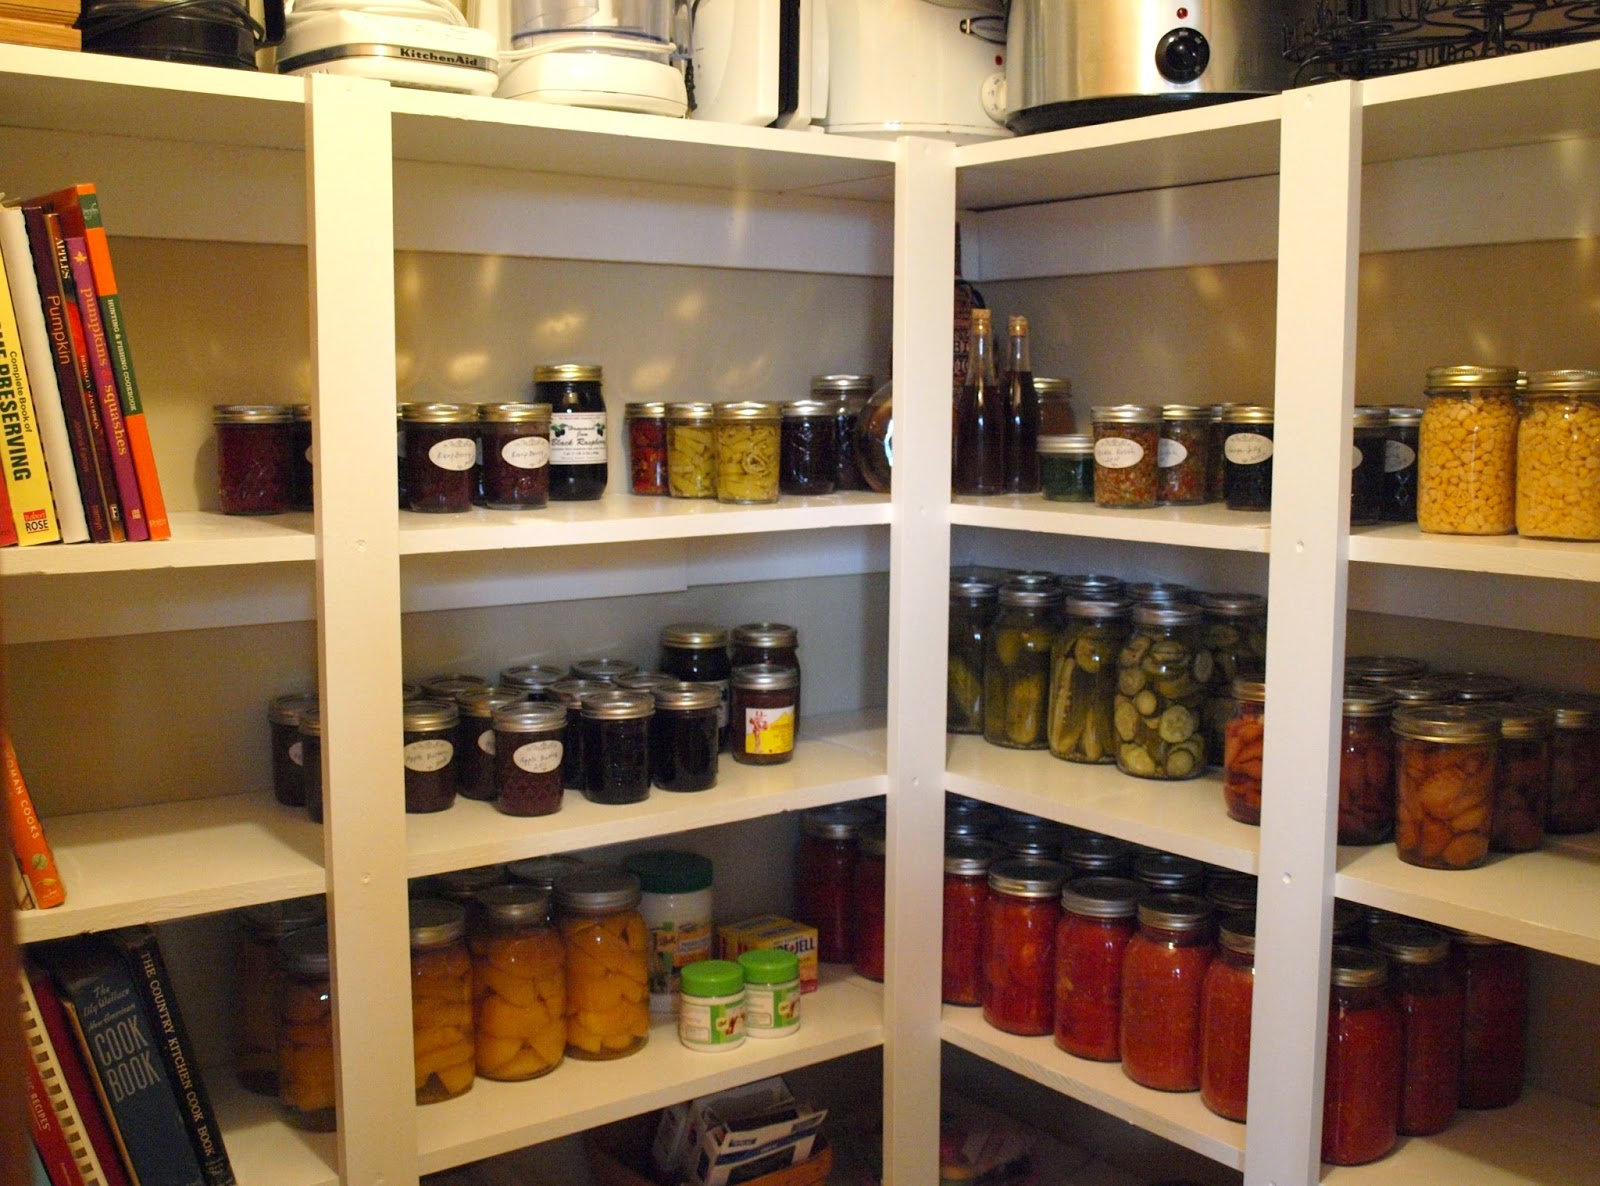 Closet Converted To Pantry Storage Before Kitchen Remodel